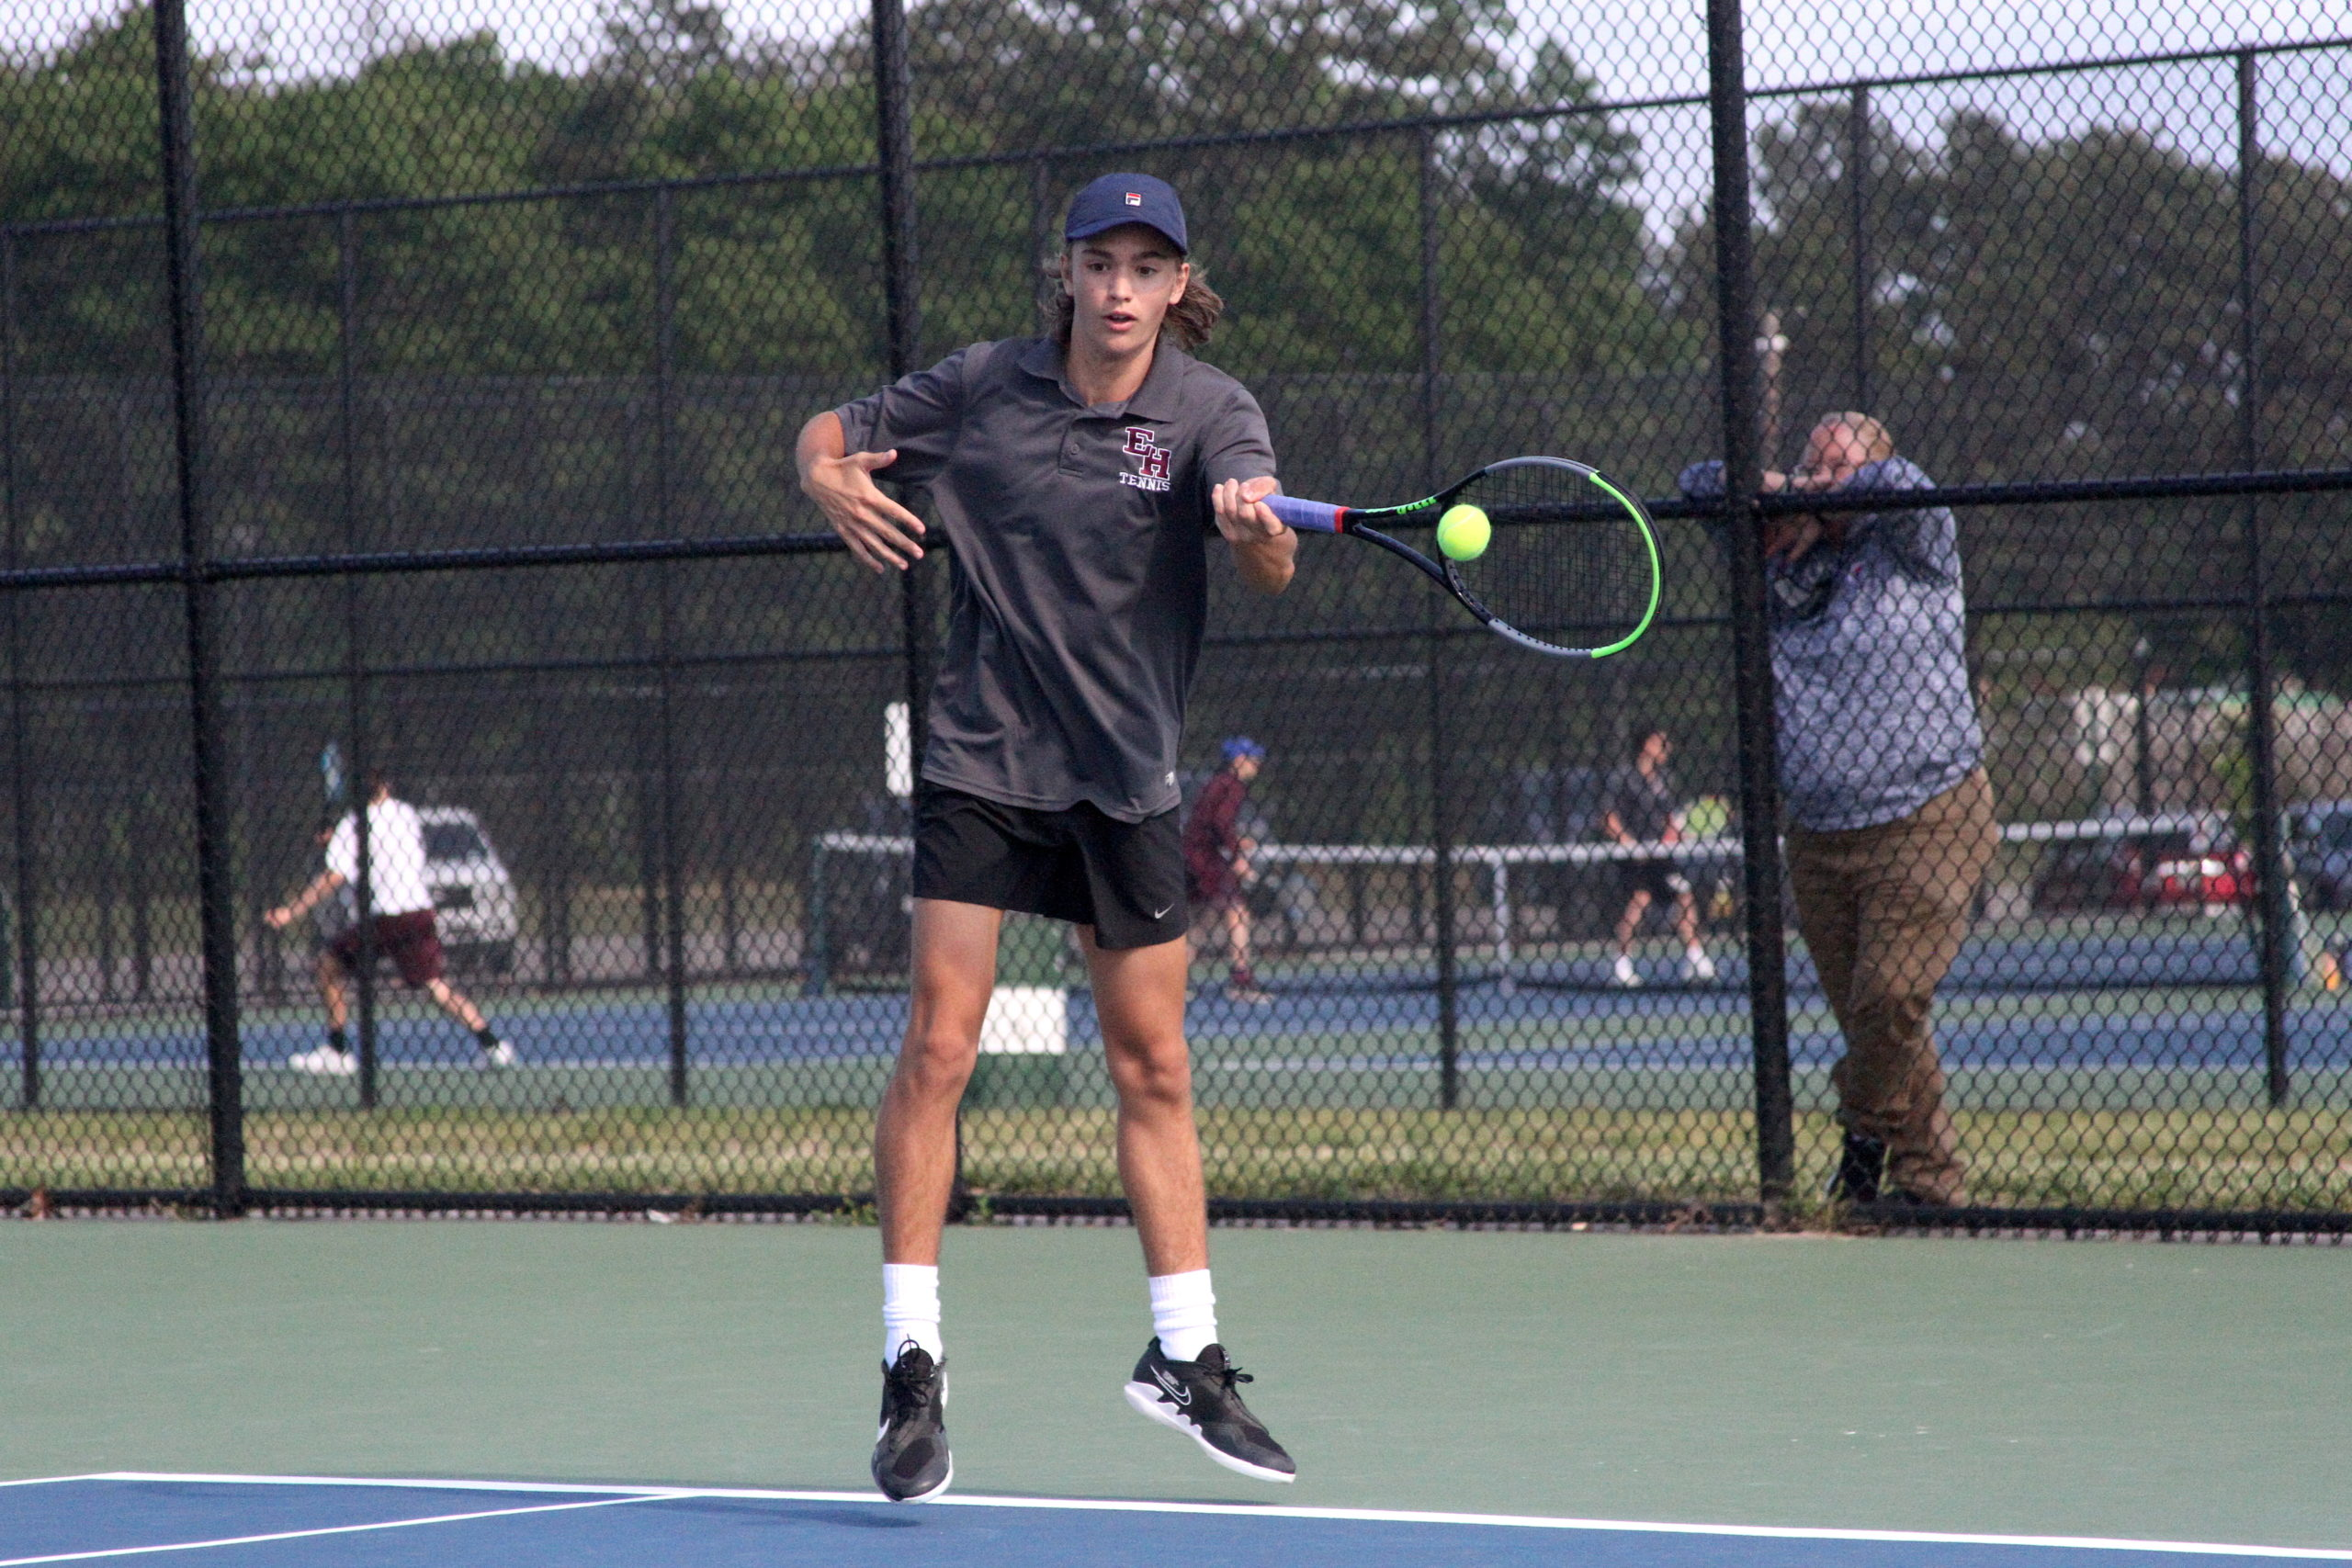 East Hampton sophomore Max Astilean keeps the volley going in his Division IV finals match. DESIRÉE KEEGAN